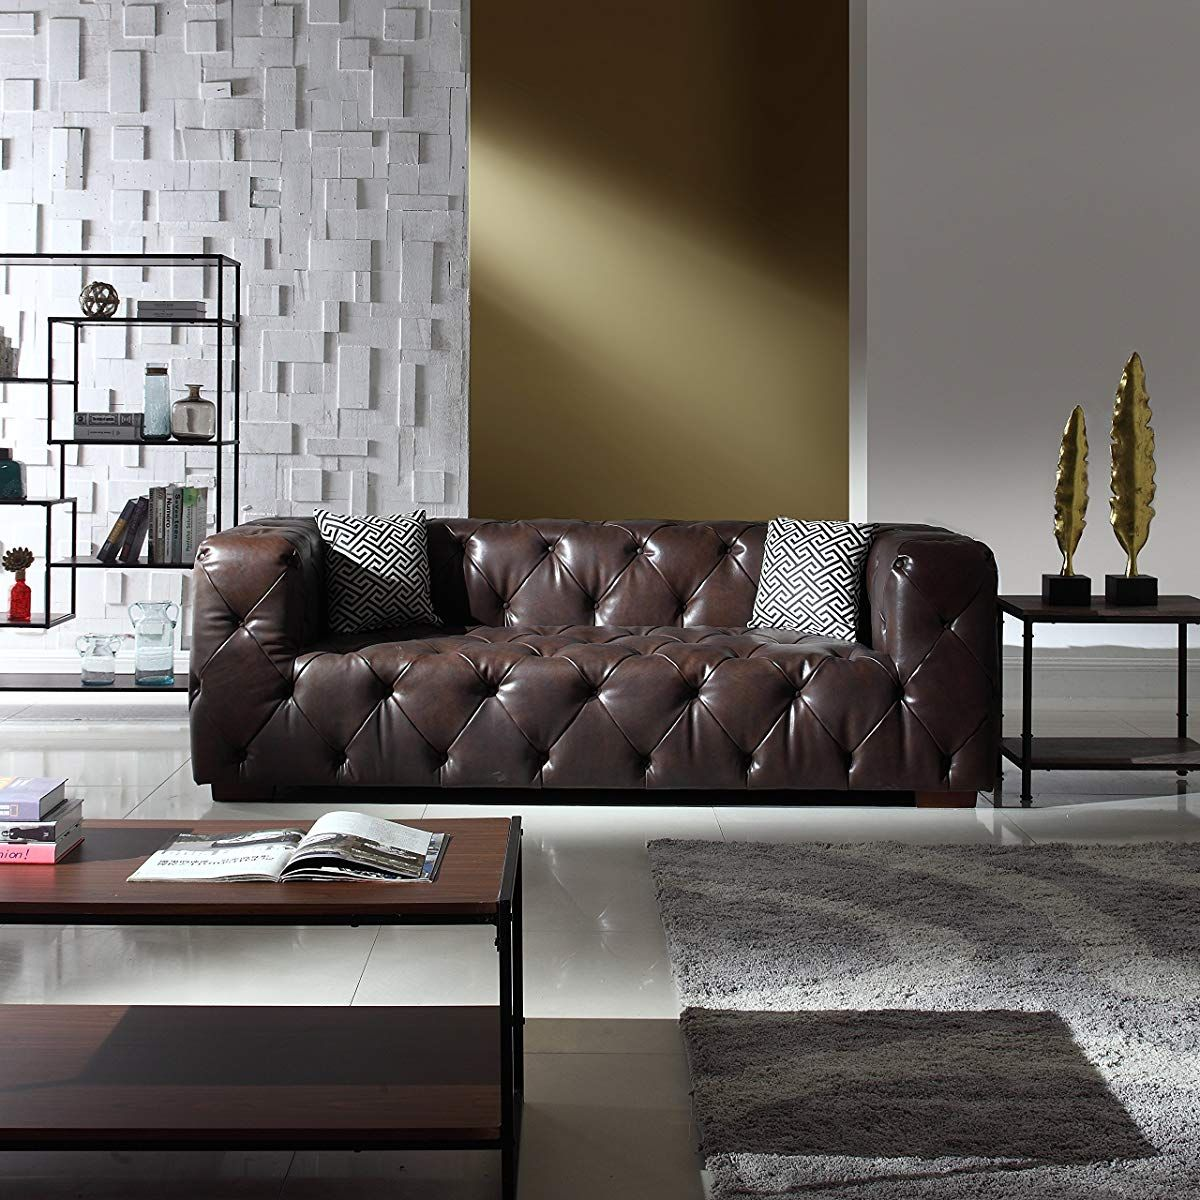 Awesome Large Tufted Leather Chesterfield Sofa Dark Brown Tufted Uwap Interior Chair Design Uwaporg